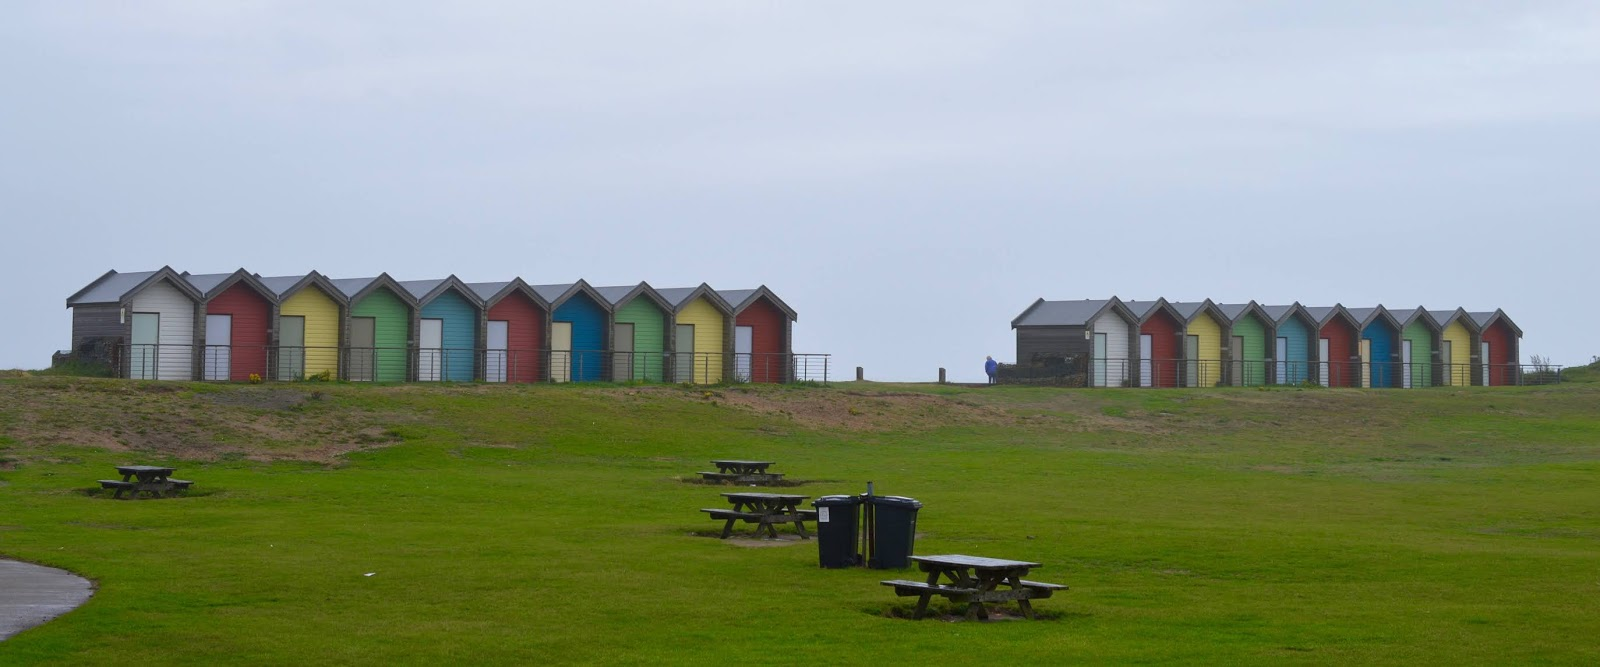 Coastal Adventures in Northumberland with Parkdean Resorts - blyth beach huts